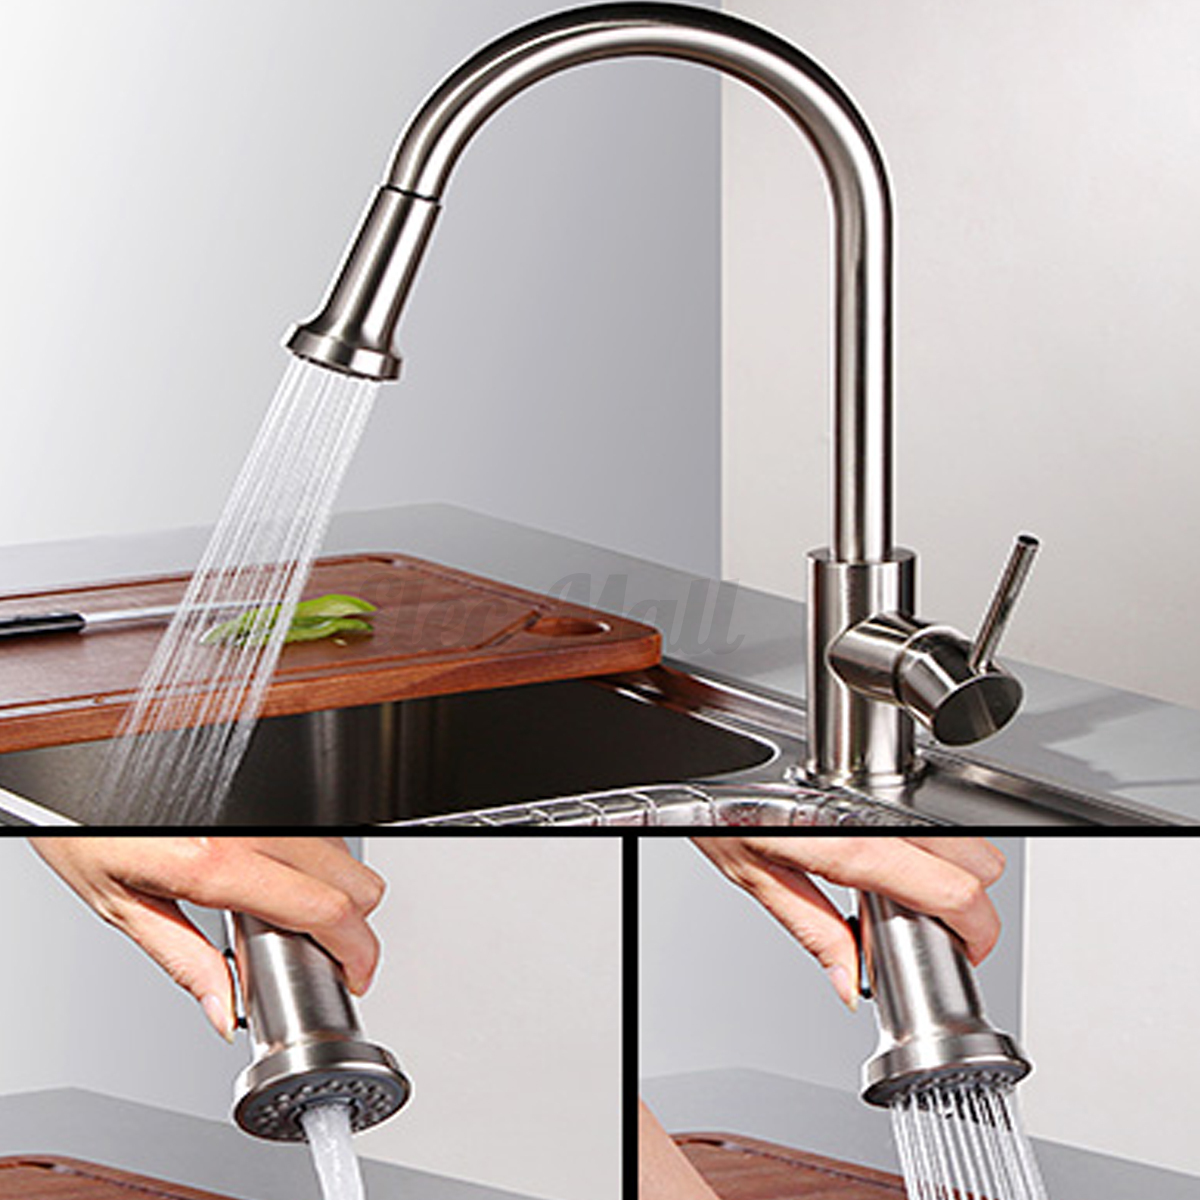 Nickel steel replacement sink faucet pull down spray water shower head kitchen ebay - Shower head for kitchen sink ...